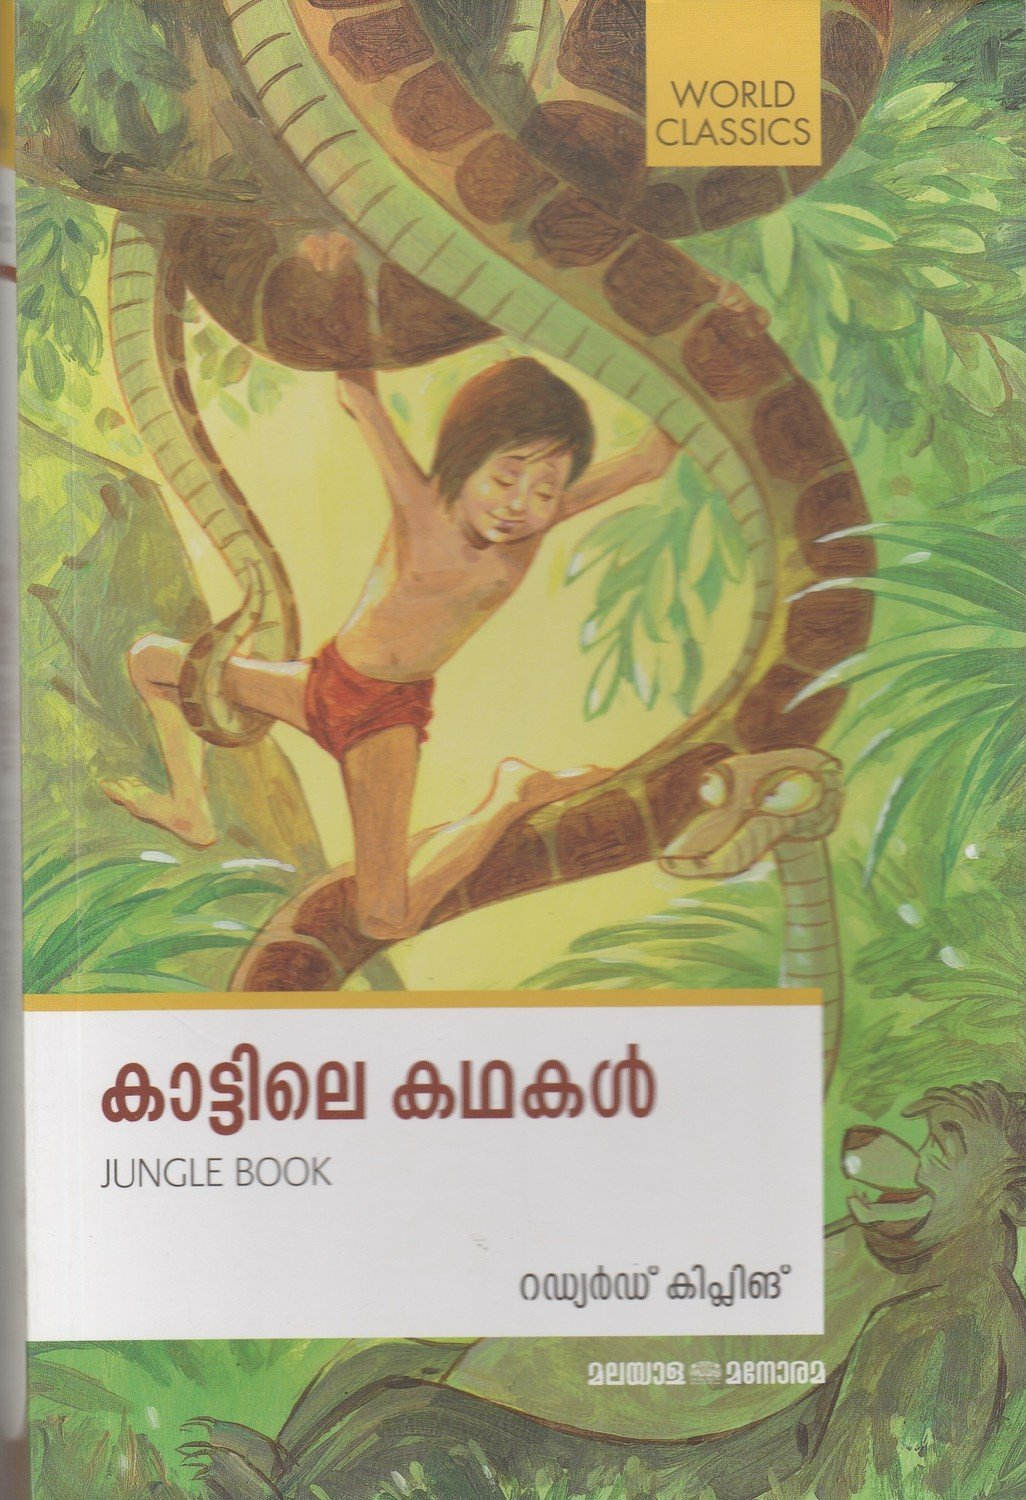 കാട്ടിലെ കഥകൾ | Kattile Kathakal (Jungle Book) by Rudyard Kipling